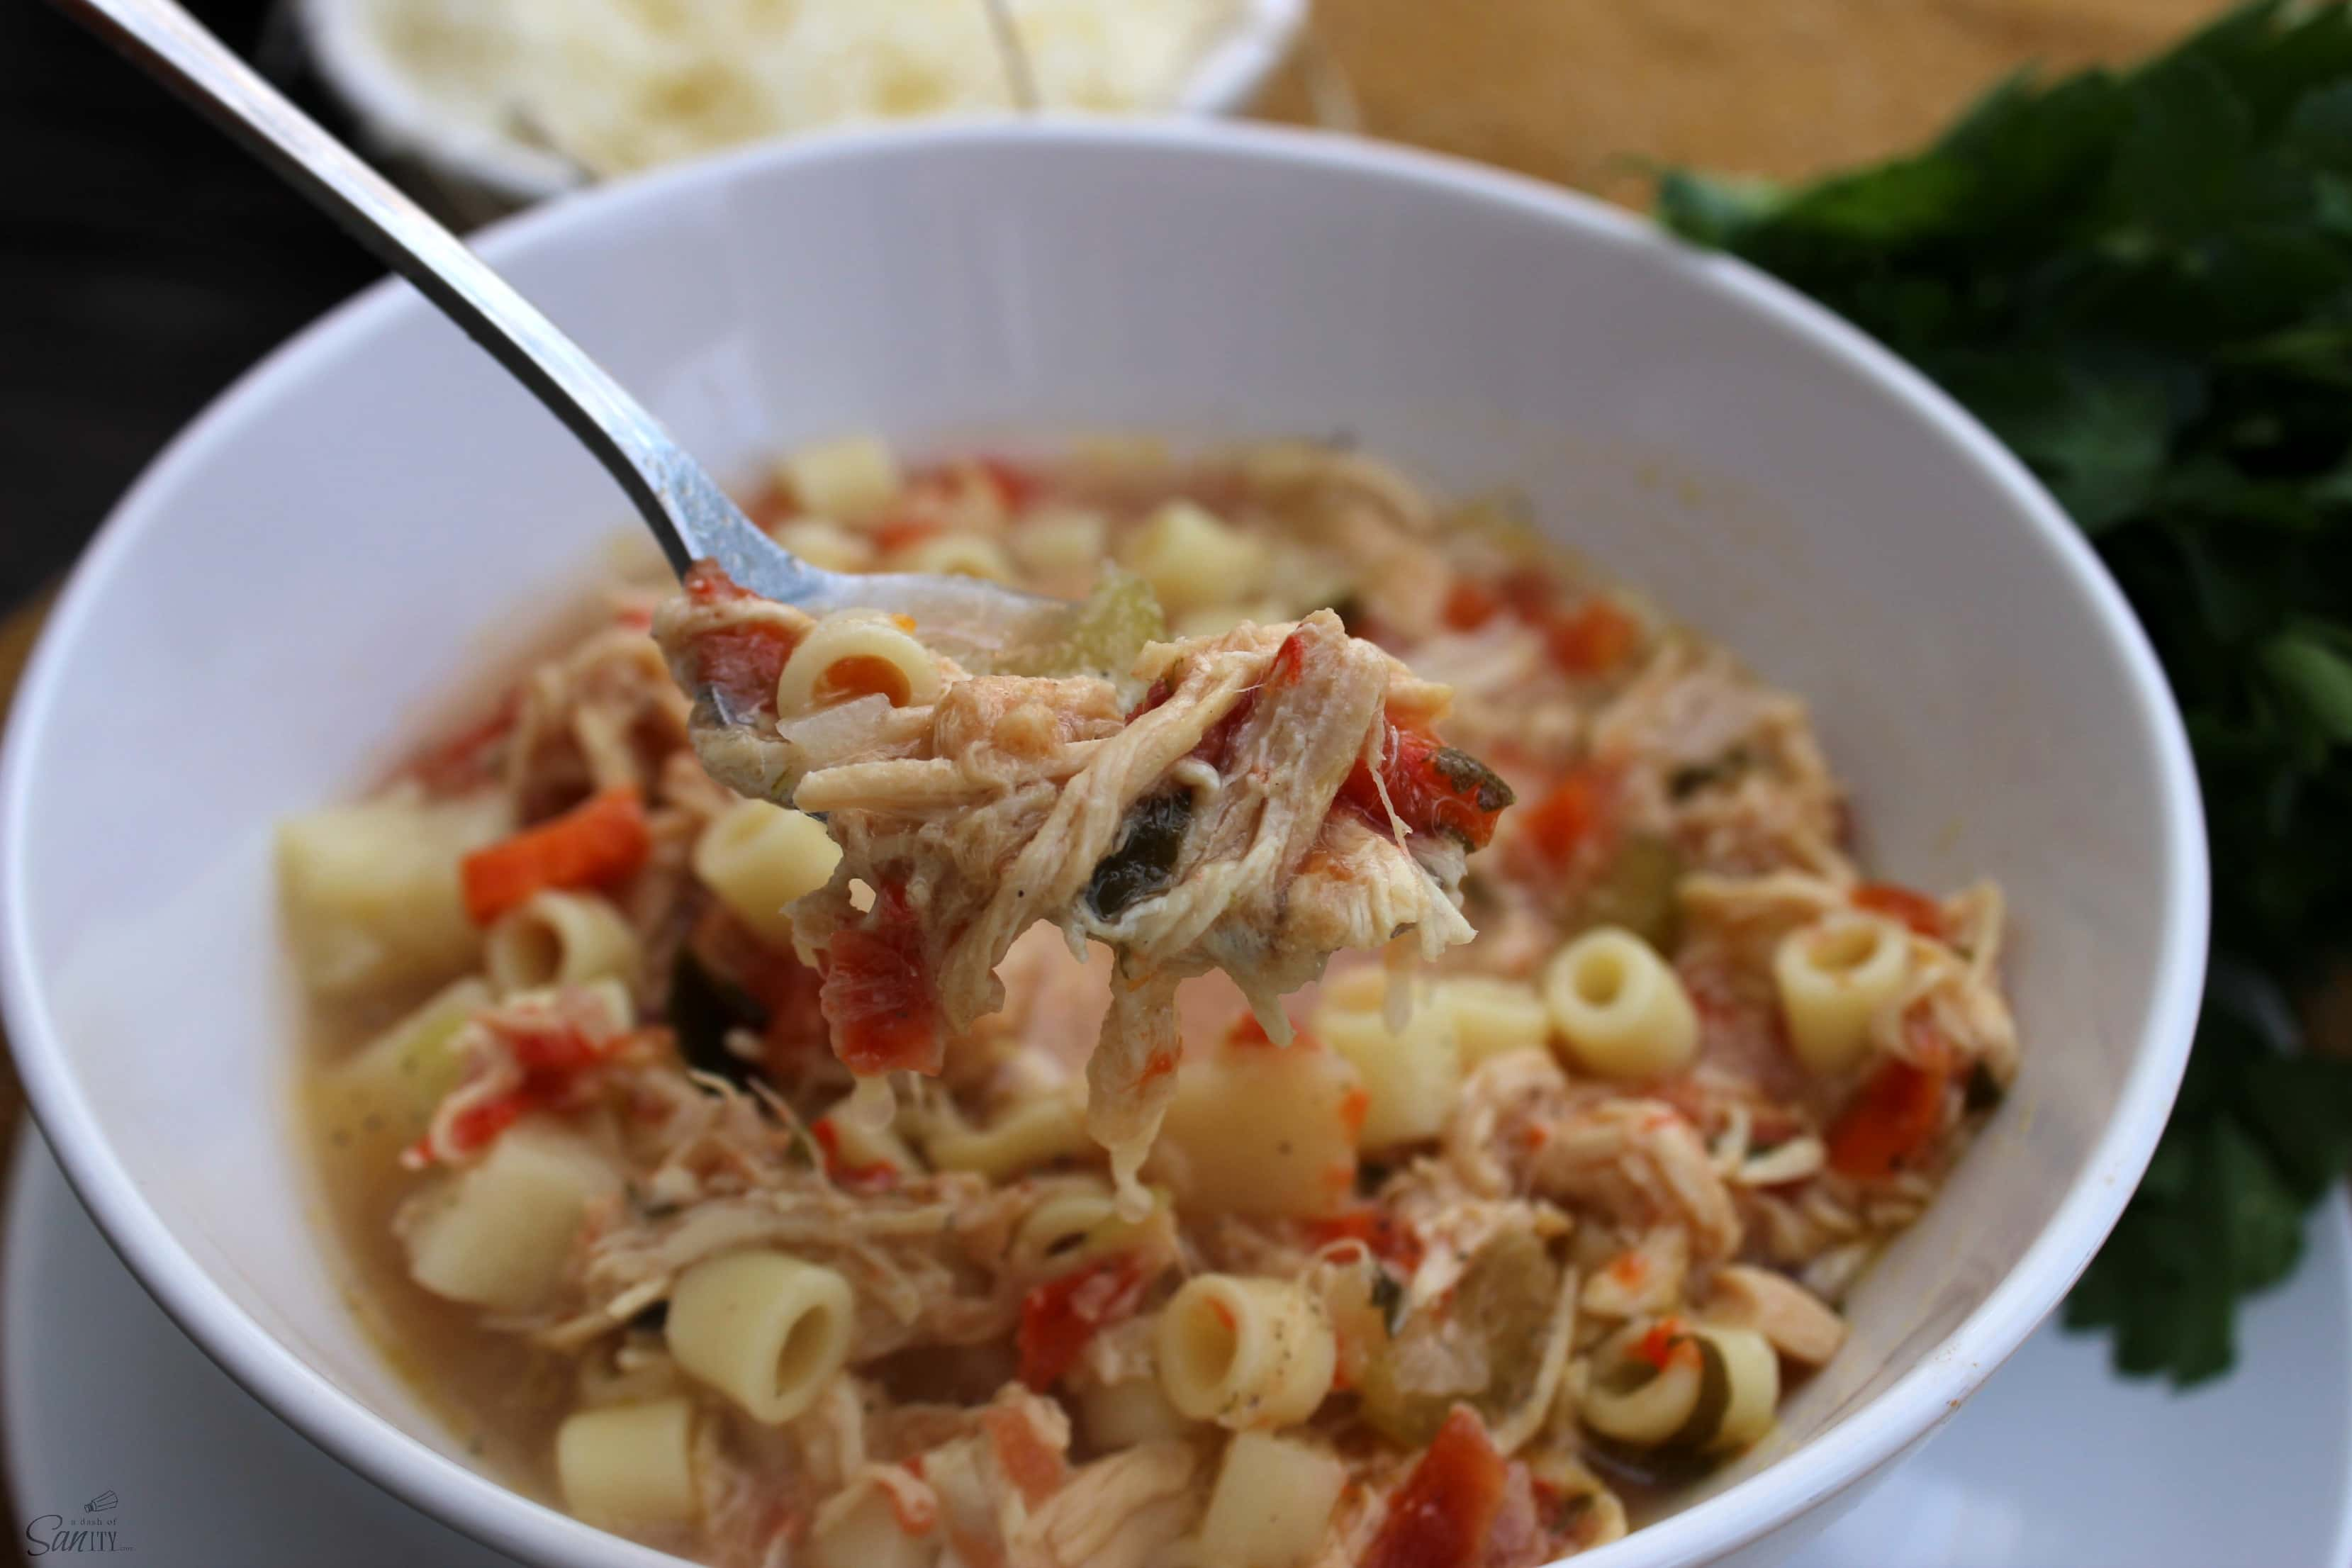 This Slow Cooker Sicilian Chicken Soup cooks all day; with a peppery broth, fresh vegetables, and tender chicken, this is comfort served in a bowl.